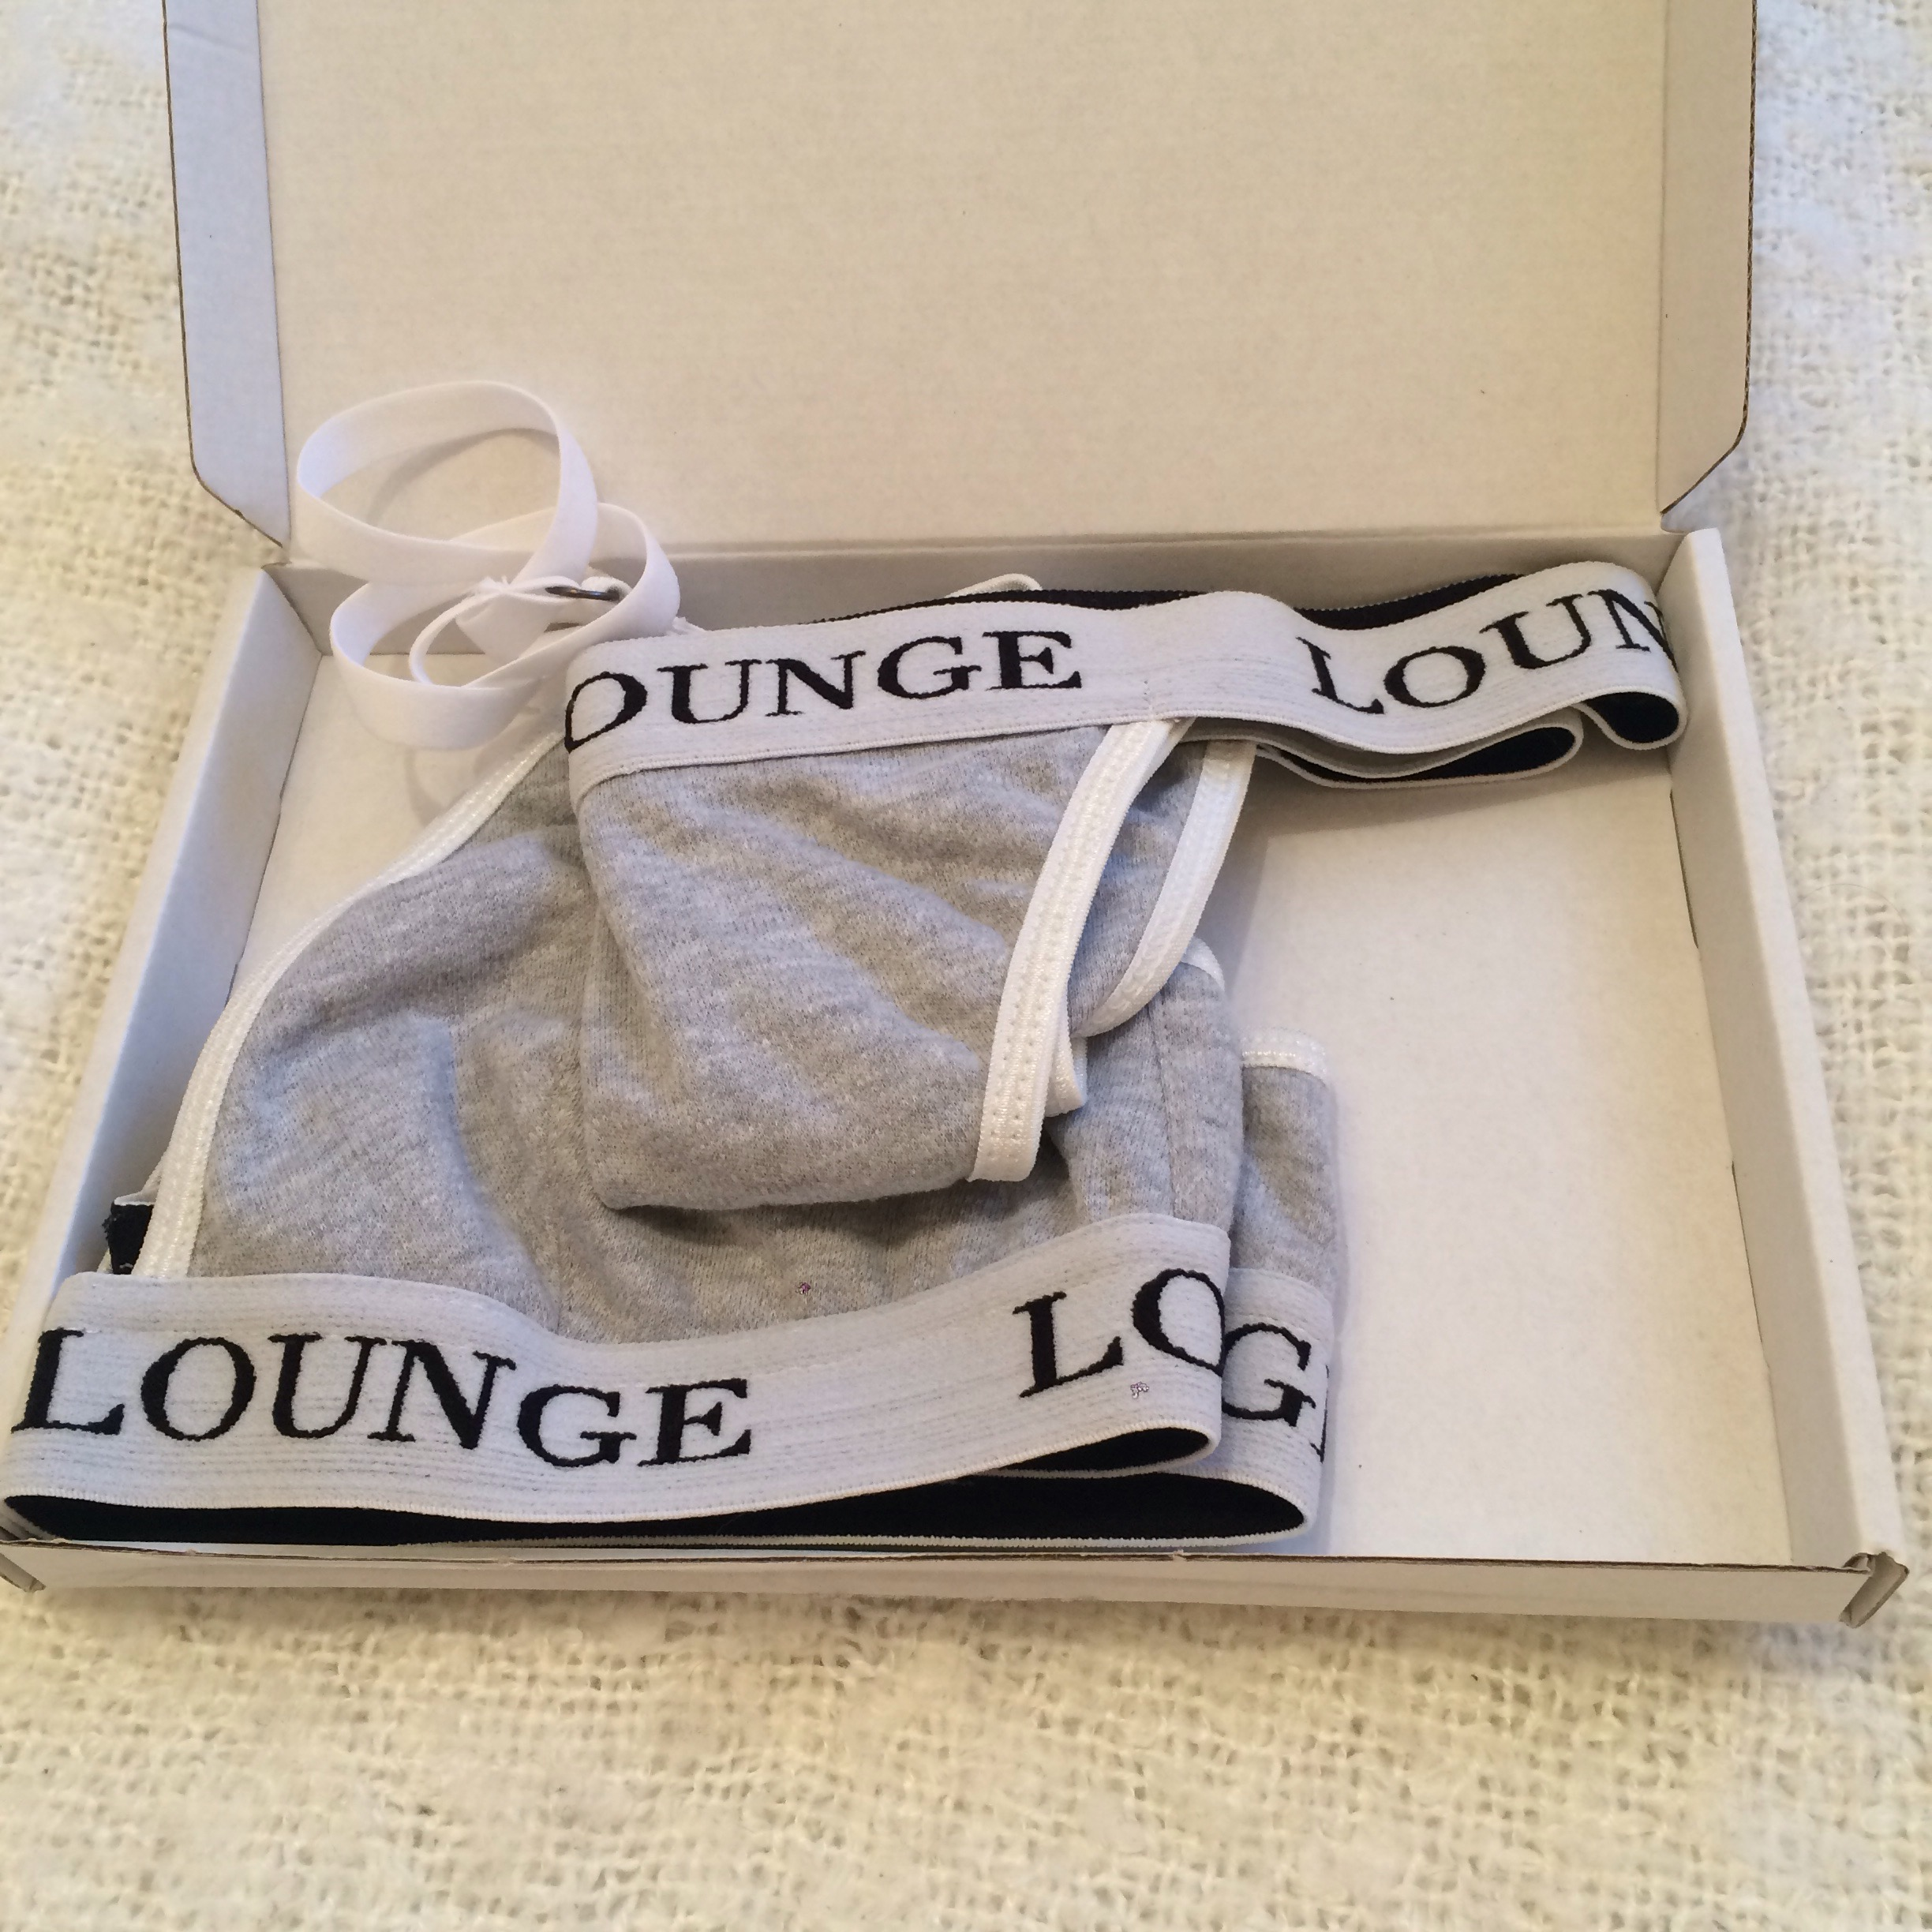 ba3b9e96813 You can purchase yours with super fast delivery at www.loungeunderwear.com